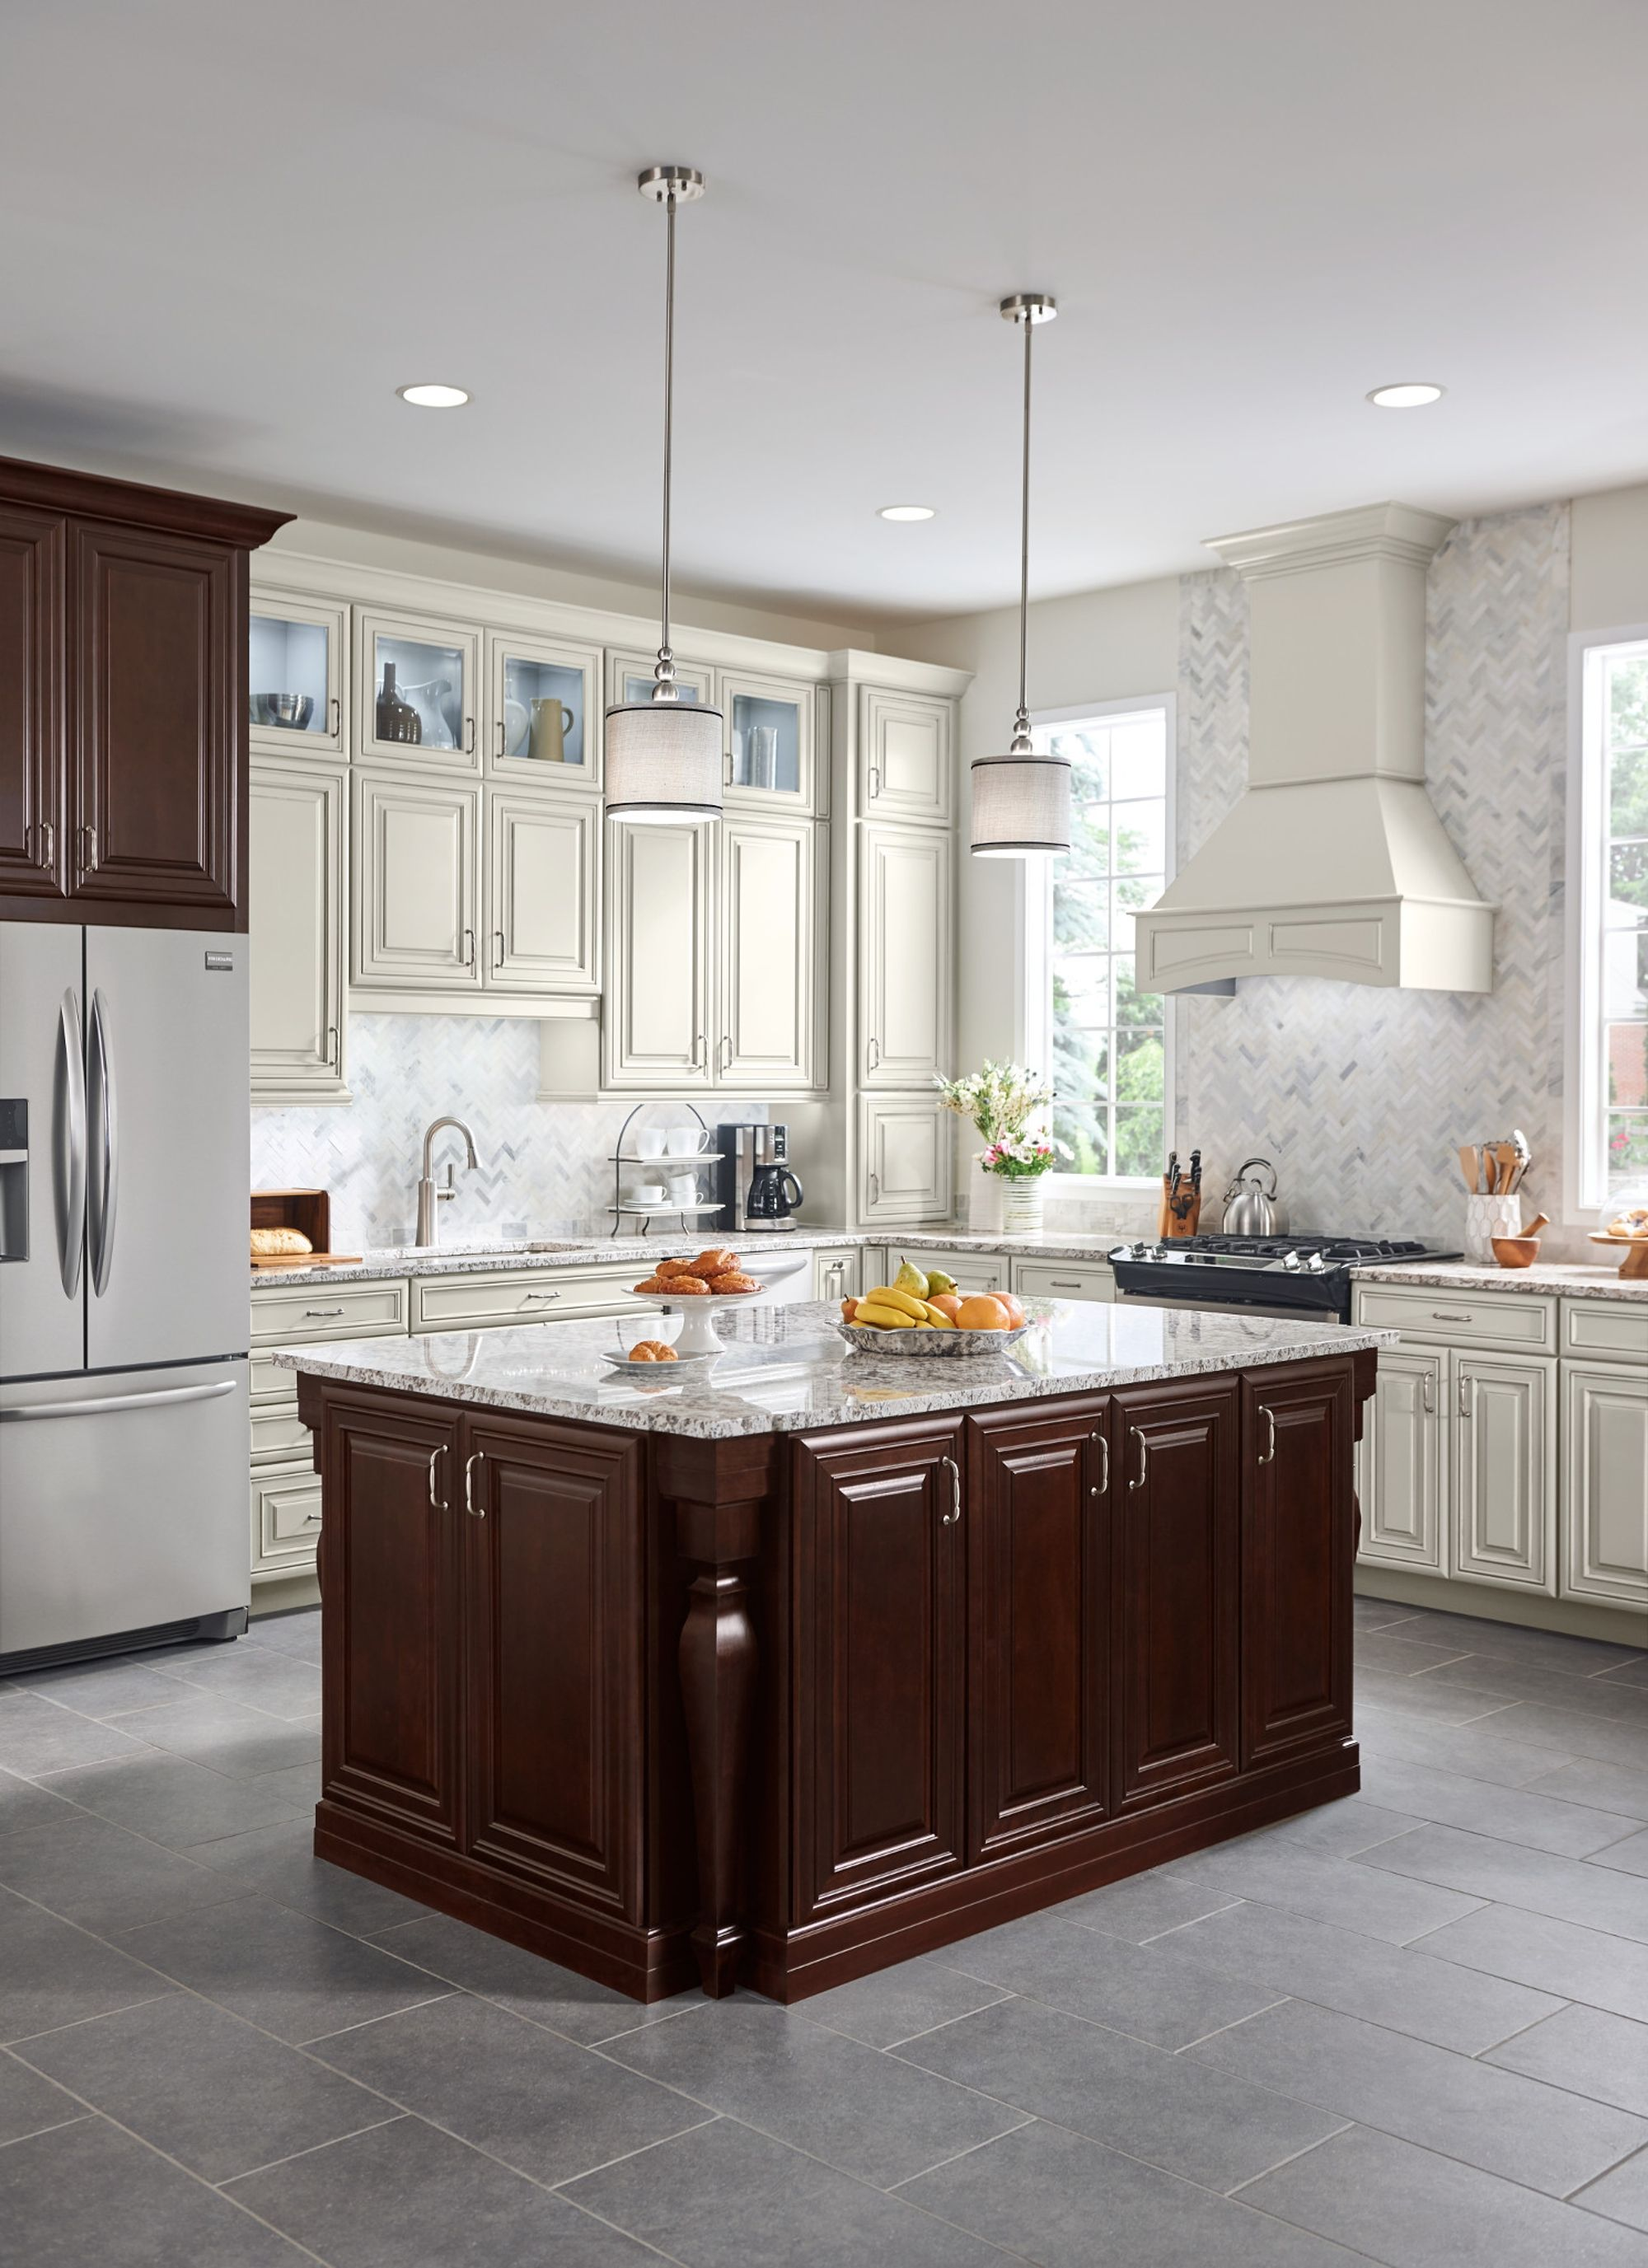 Mocha Glaze Kitchen Cabinets Mitered Cabinet Doors Westfall In 2020 Kitchen Remodel New Kitchen Cabinets Quality Kitchen Cabinets